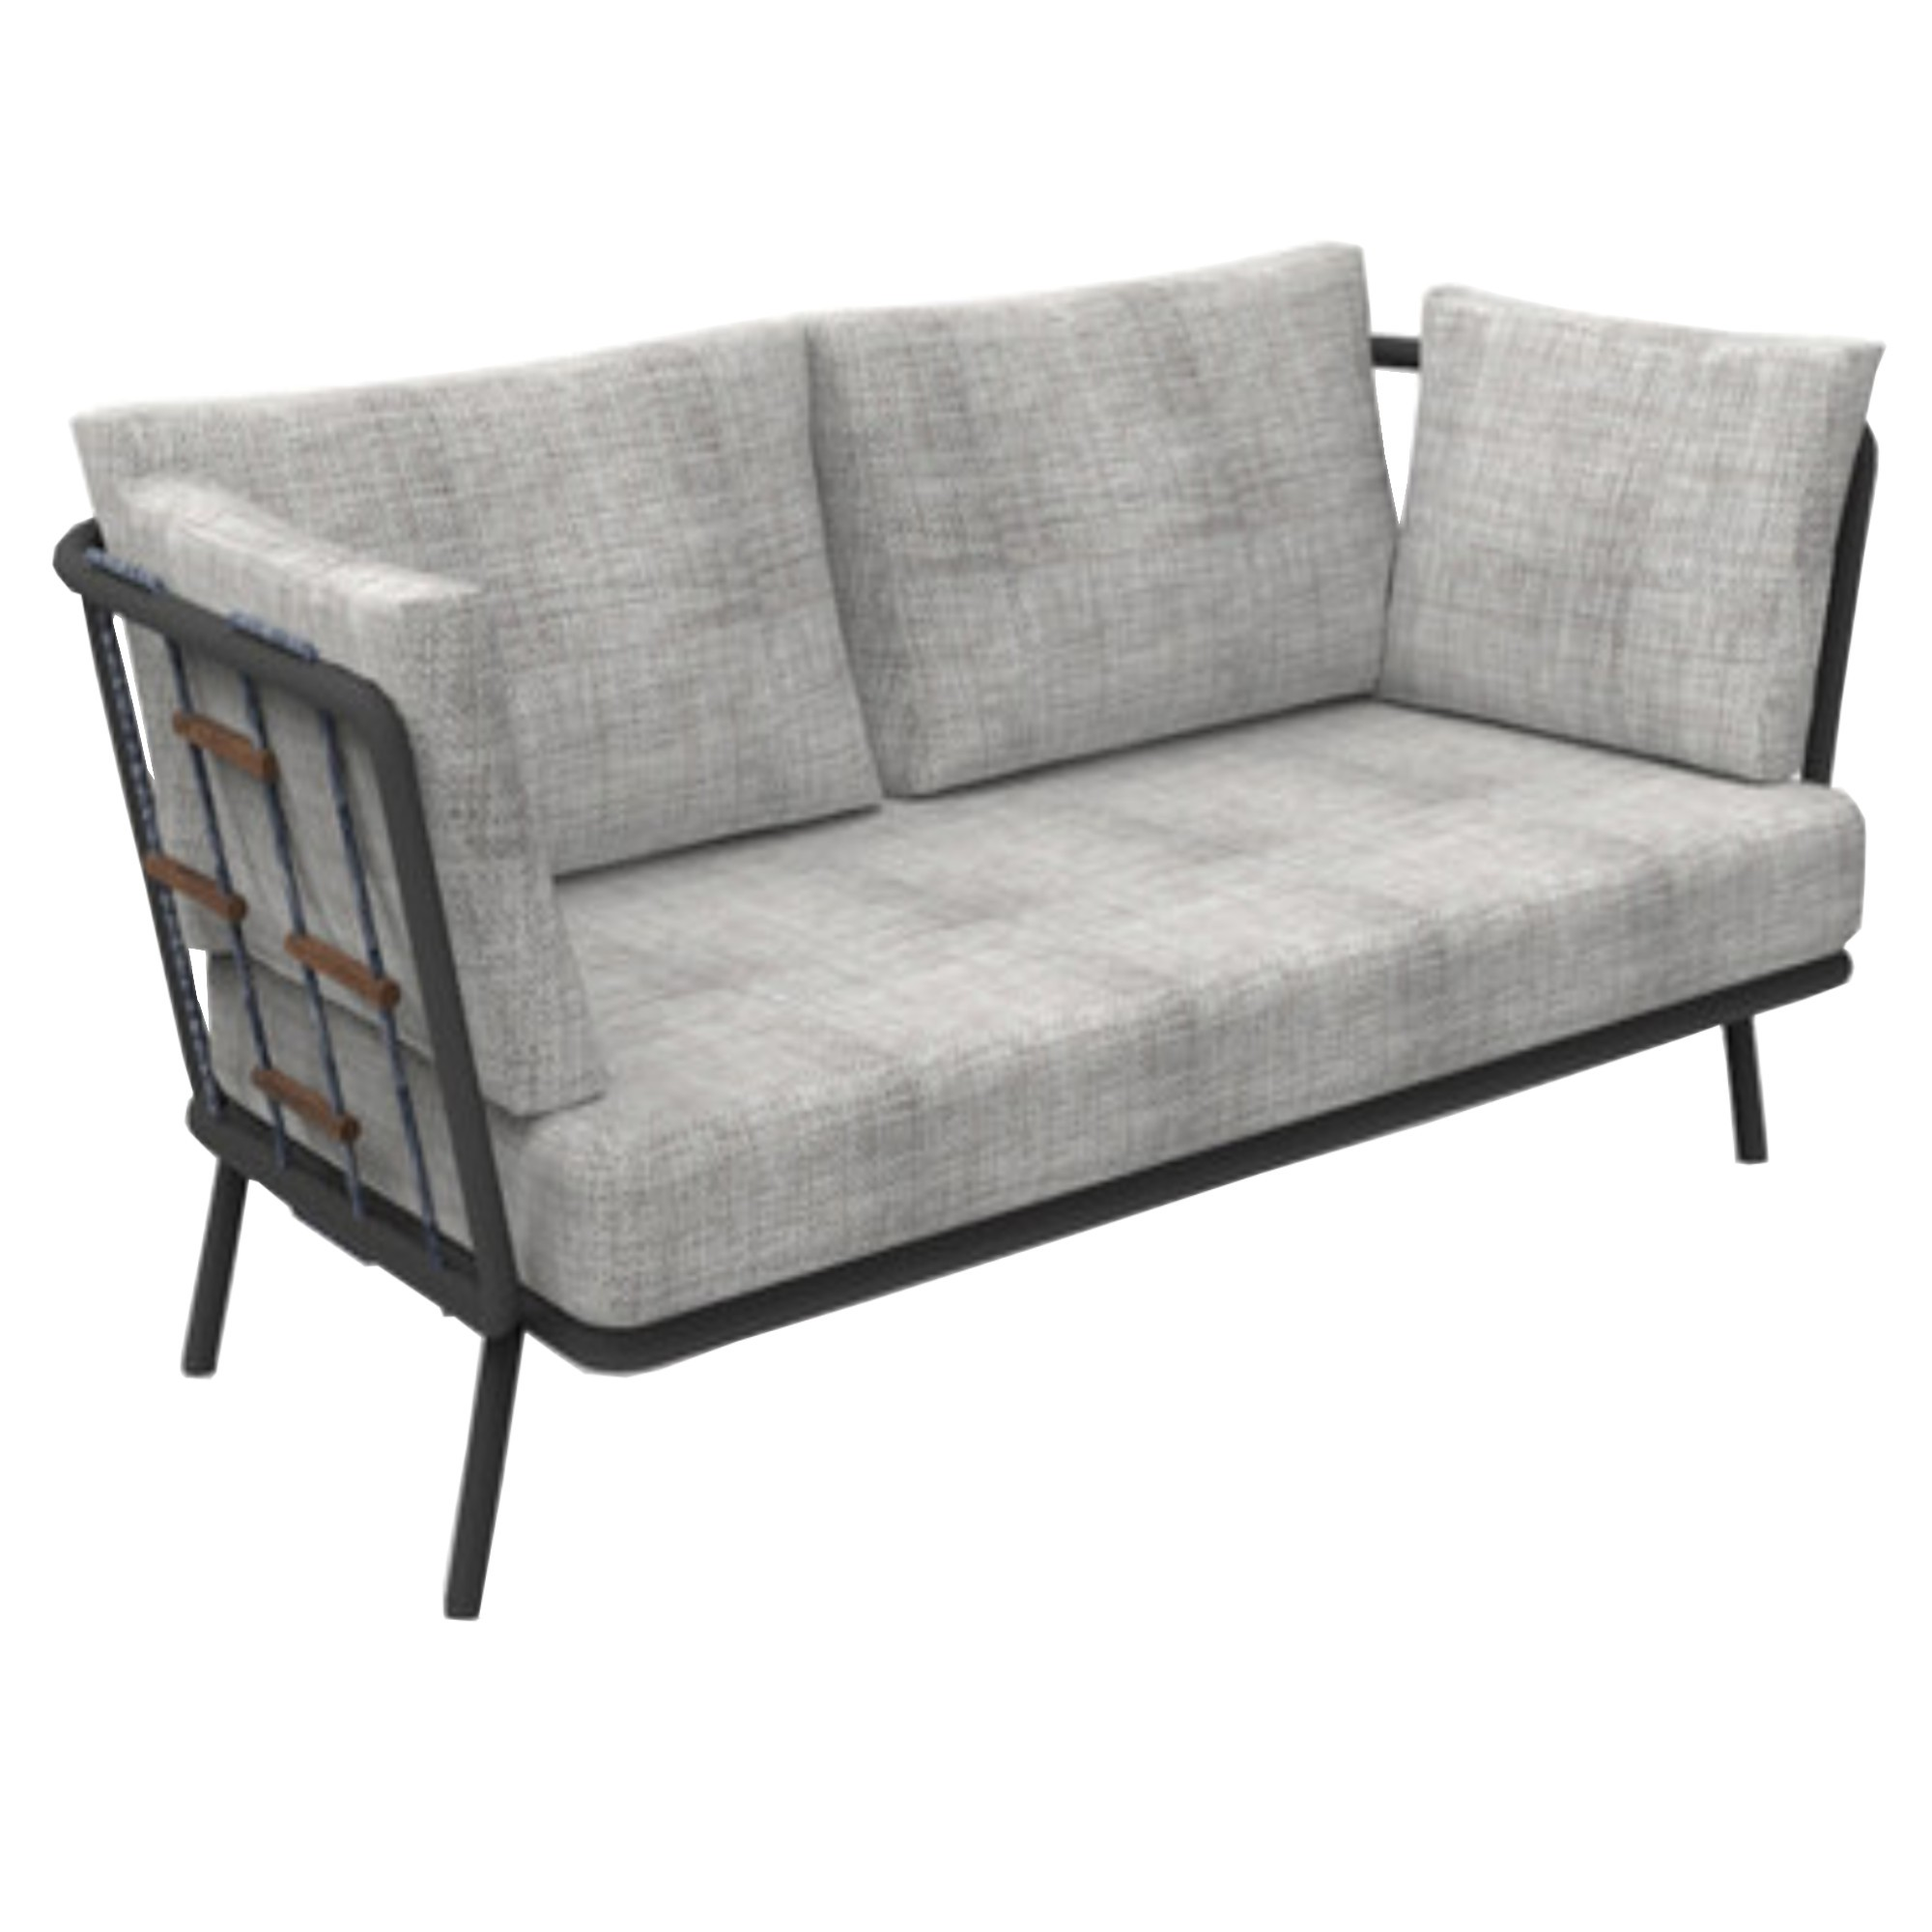 SOHO SOFA, By TALENTI ICON